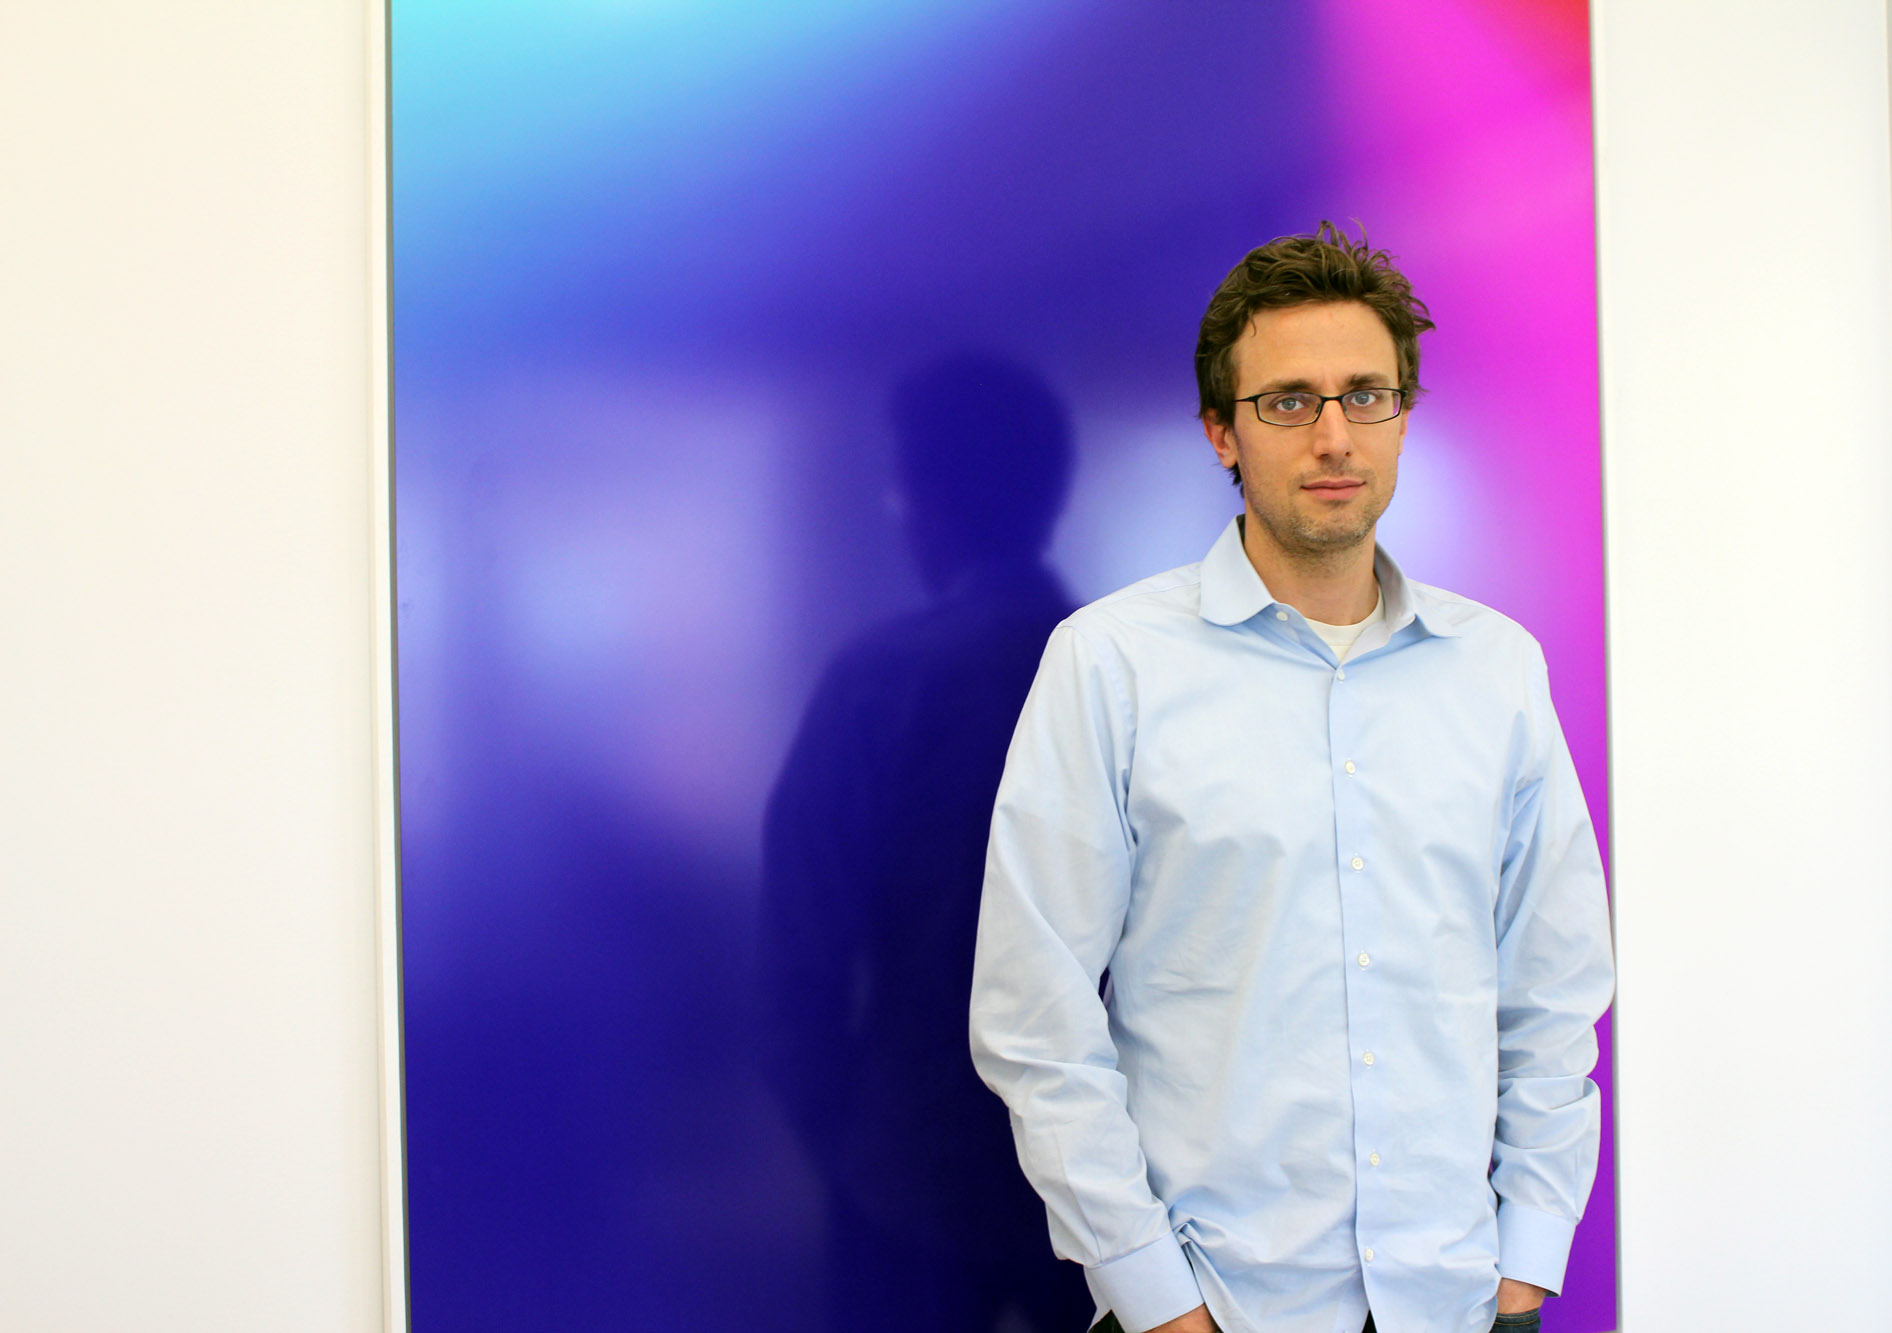 The BuzzFeed Numbers Jonah Peretti Won't Talk About